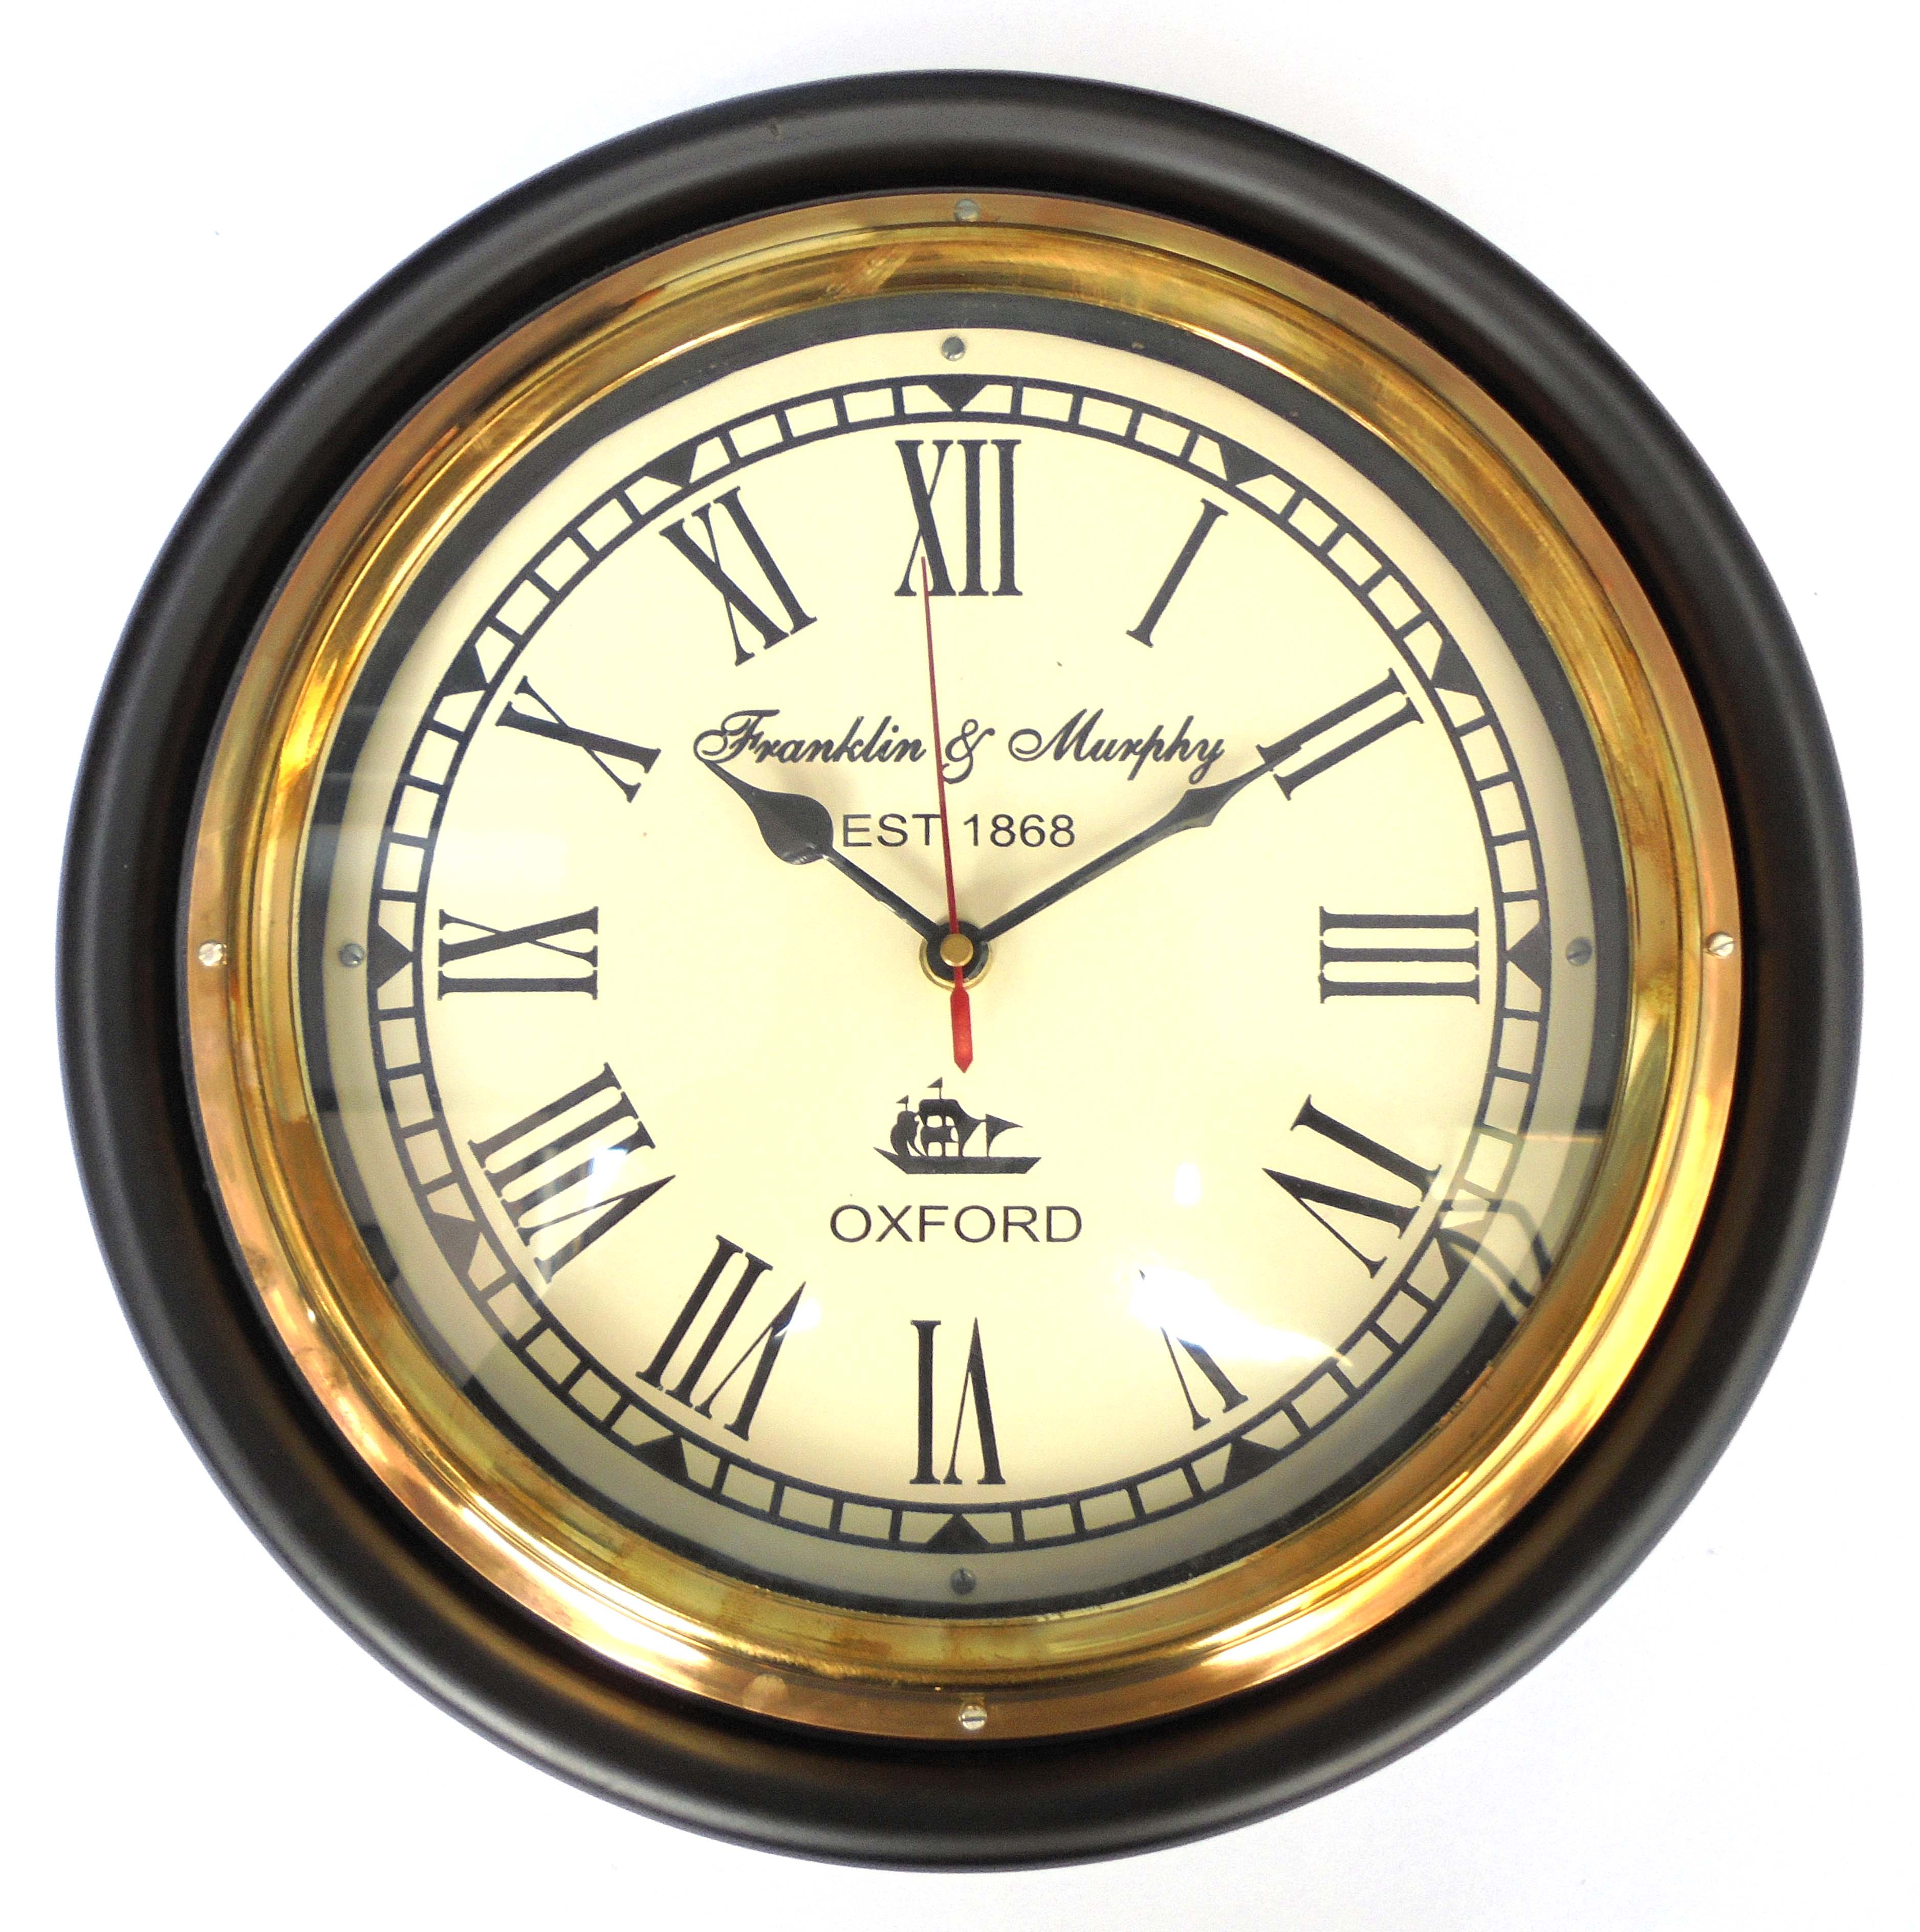 Buy ageless azyra vintage antique look wood and brass wall for Antique wall clock wood